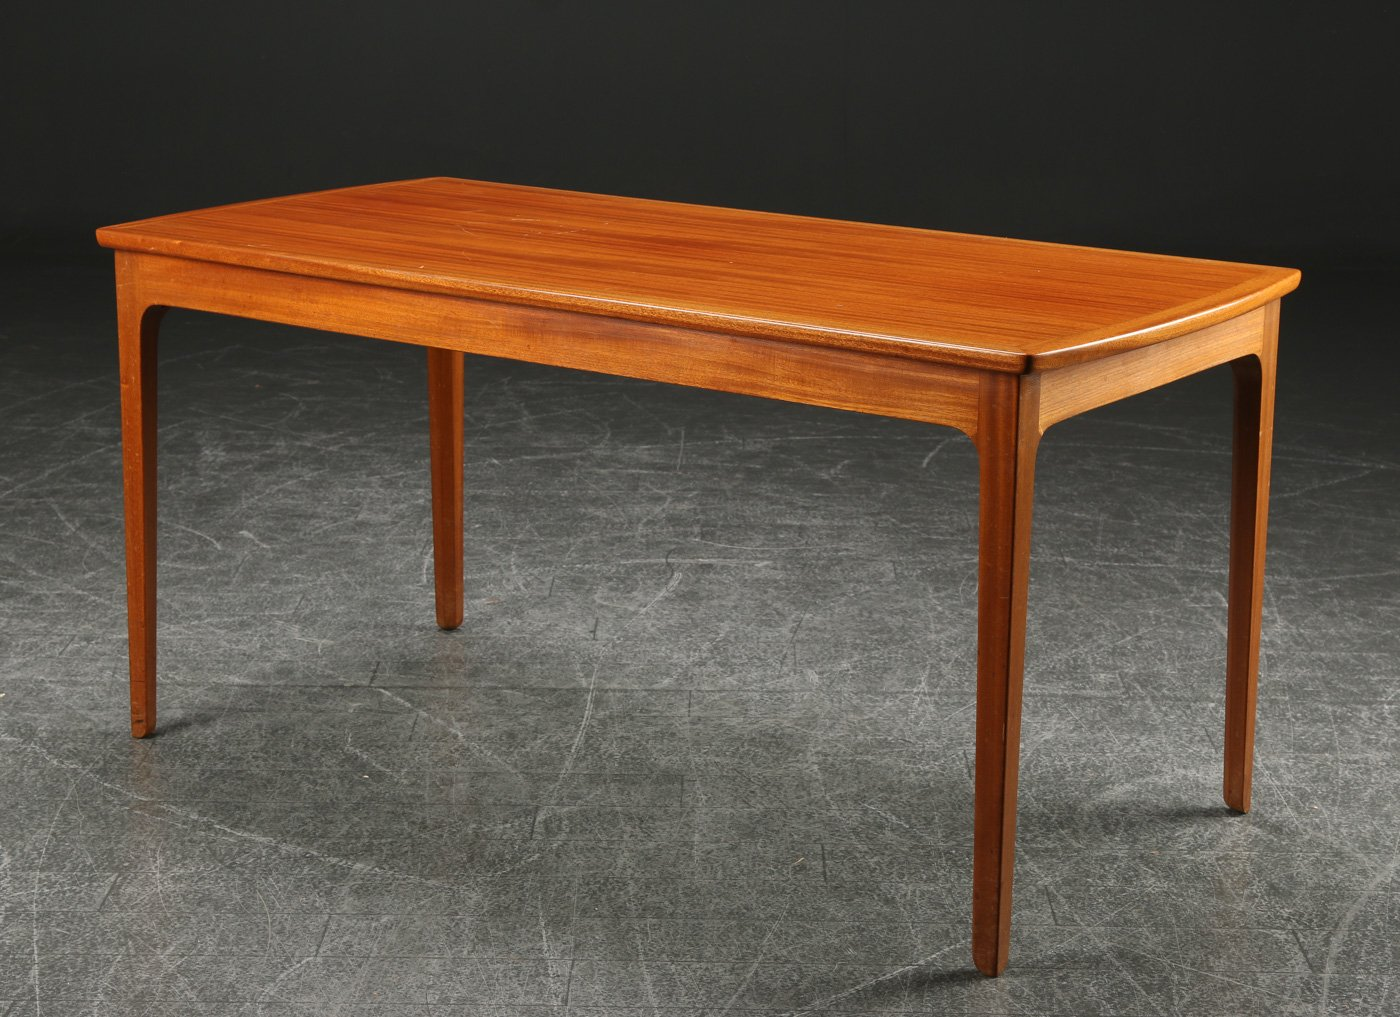 Mahogany Coffee Table By Ole Wanscher For A J Iversen 1970s For Sale At Pamono